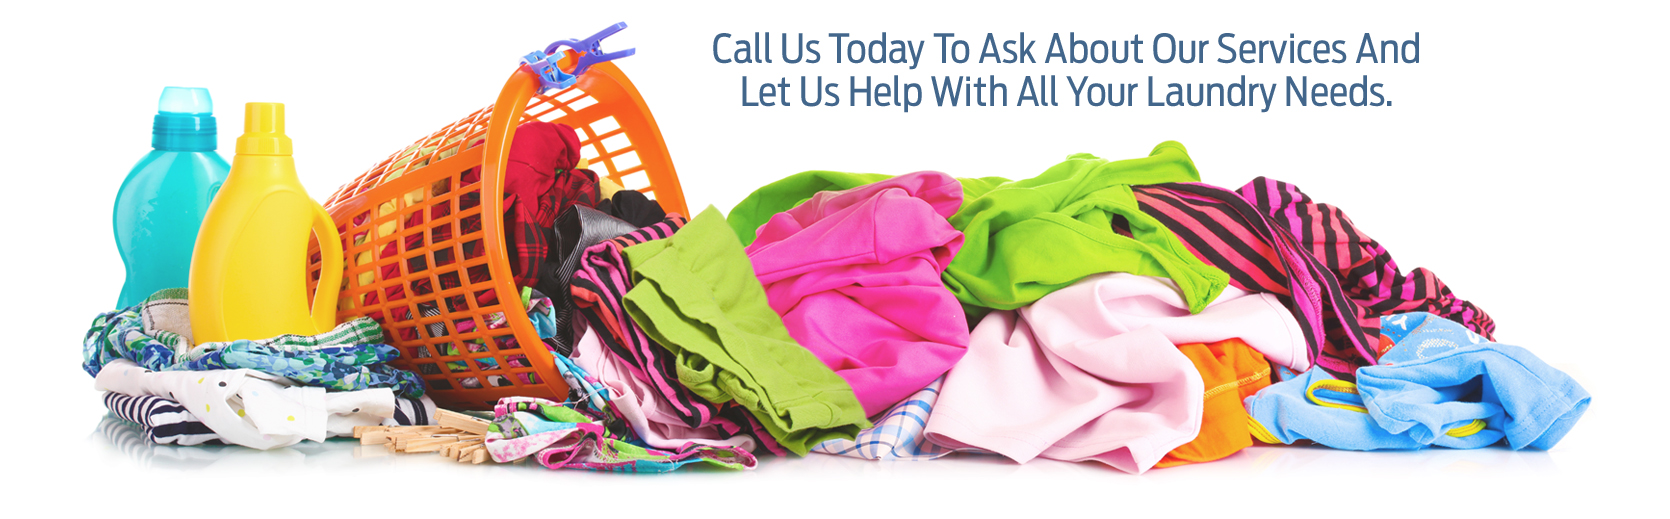 Call us today to ask about our services